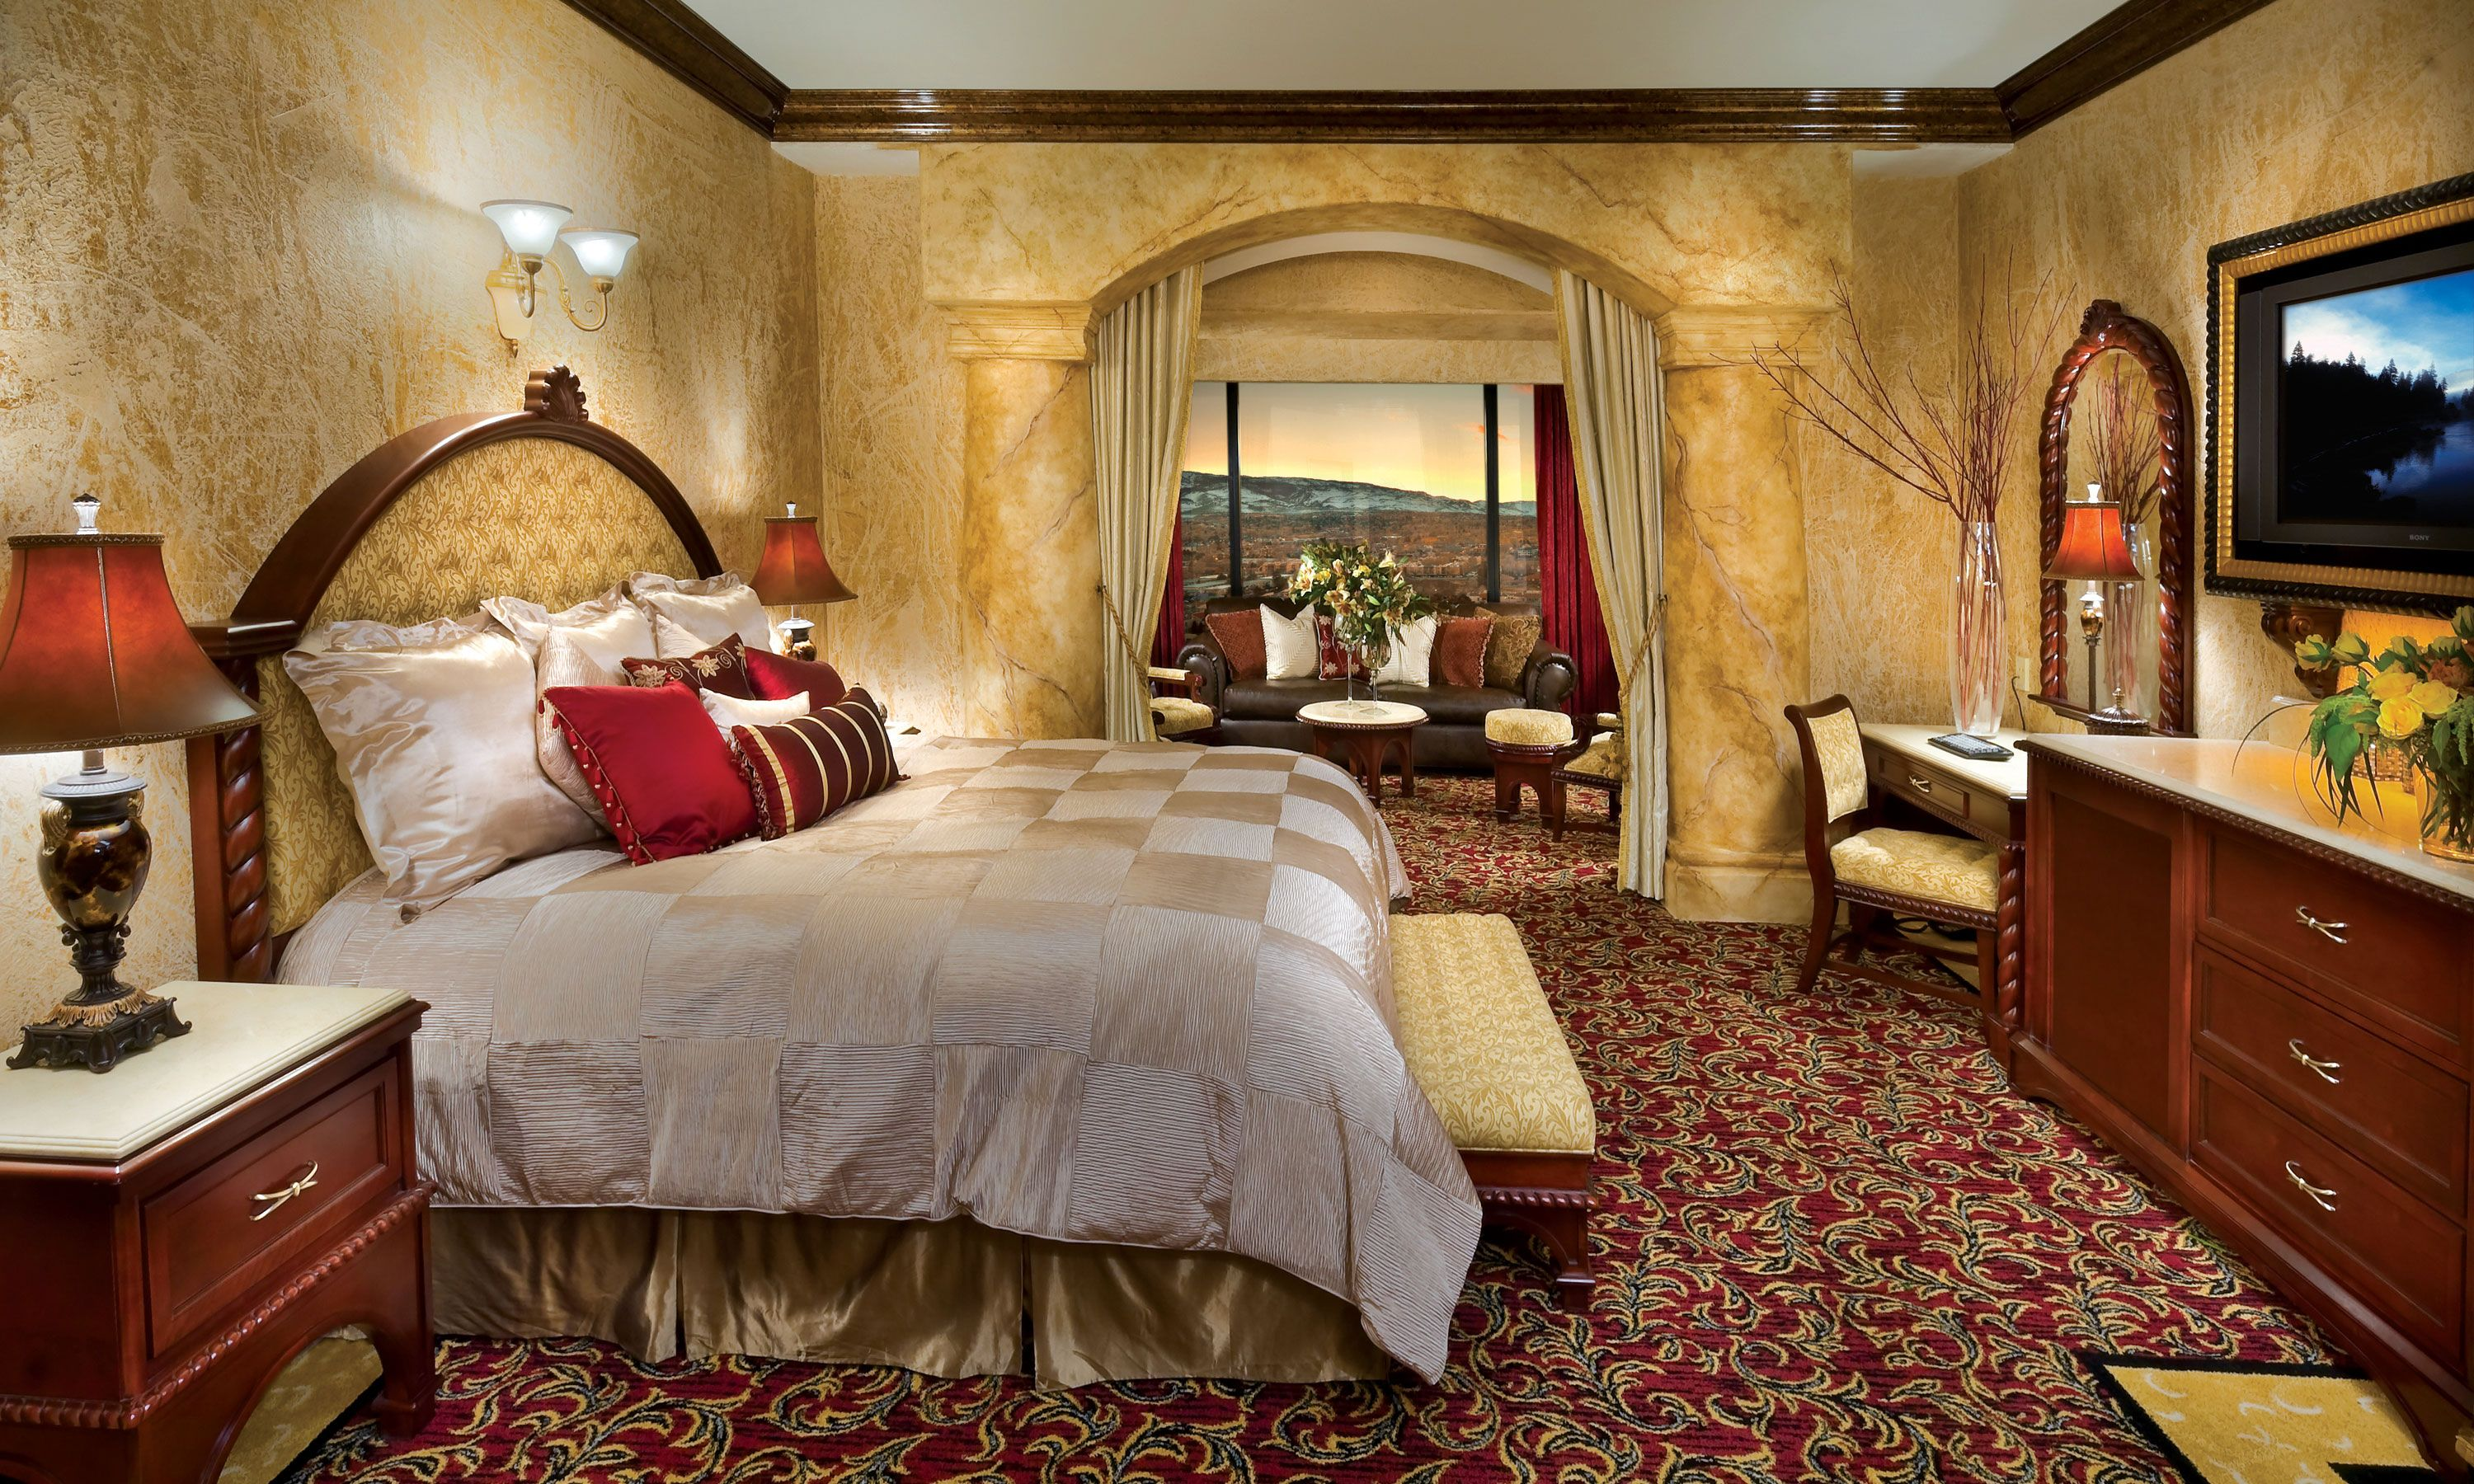 Atlantis Bedroom Furniture Decor Images Design Inspiration